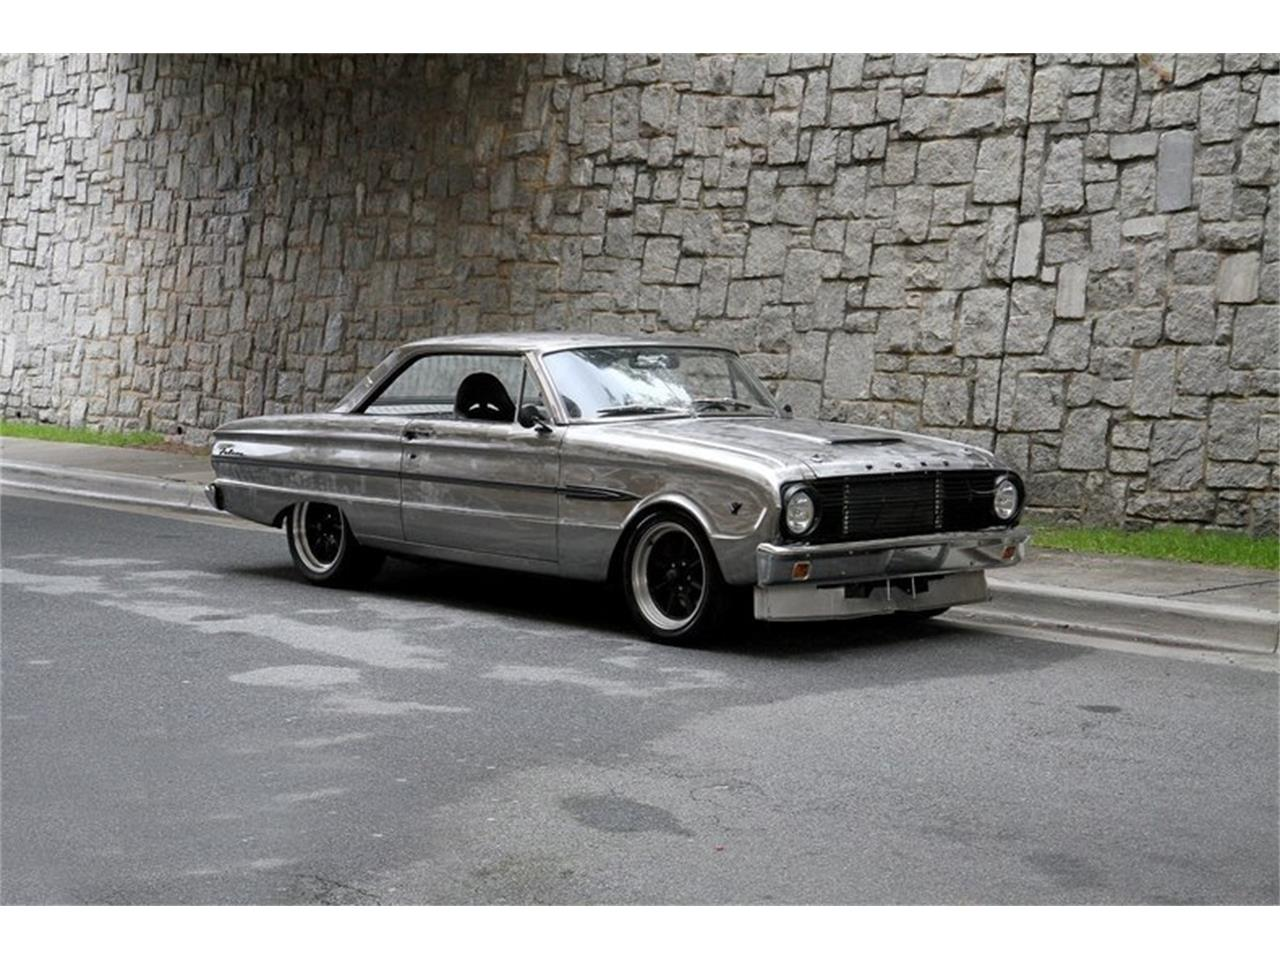 Large picture of 1963 ford falcon 29900 00 offered by motorcar studio mv7k